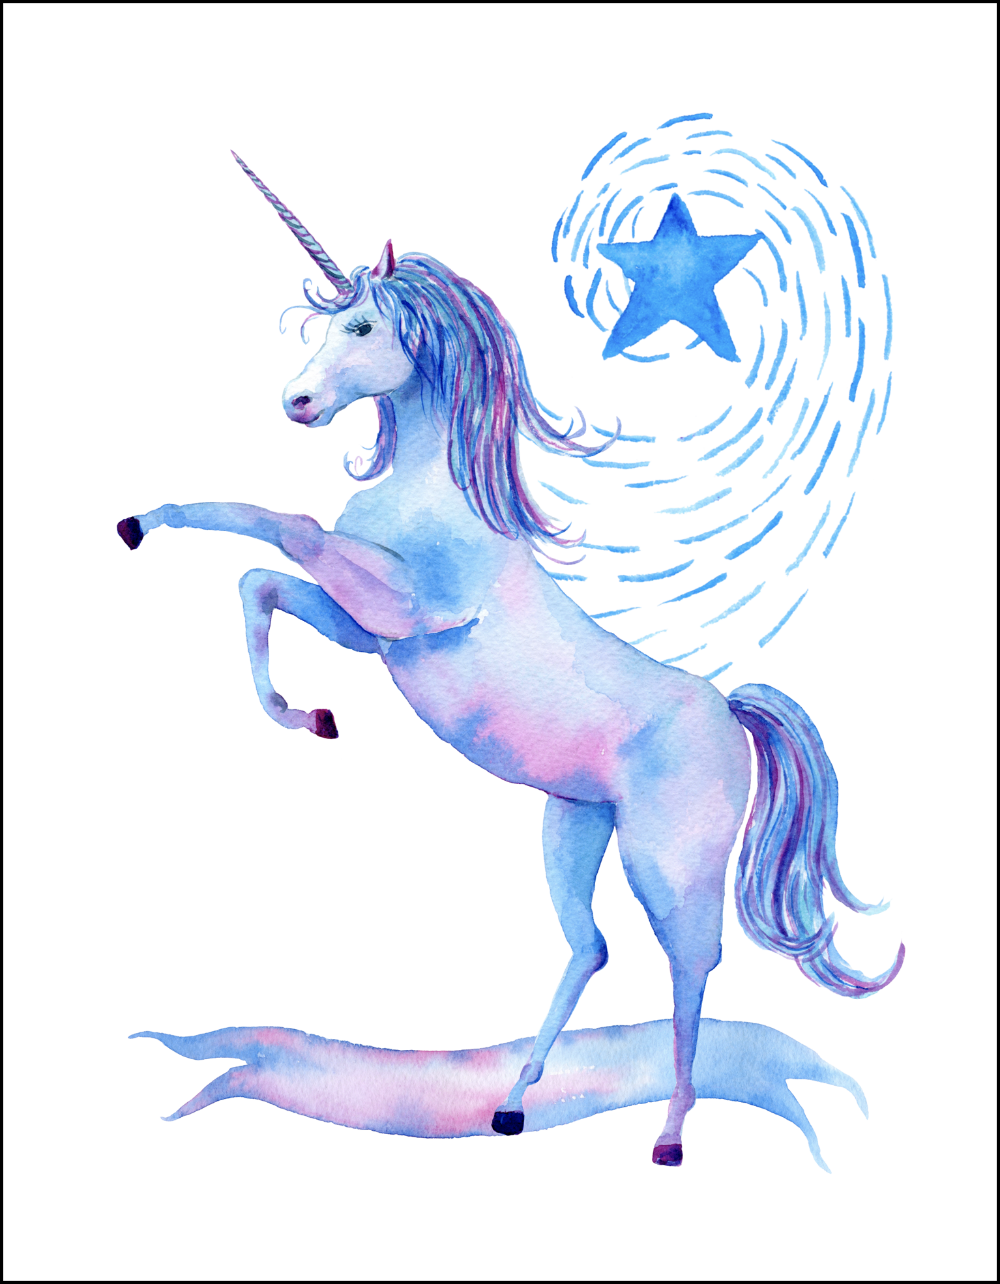 picture relating to Free Printable Unicorn Pictures named Cost-free Printable Watercolor Unicorn Photos - Oh My Resourceful